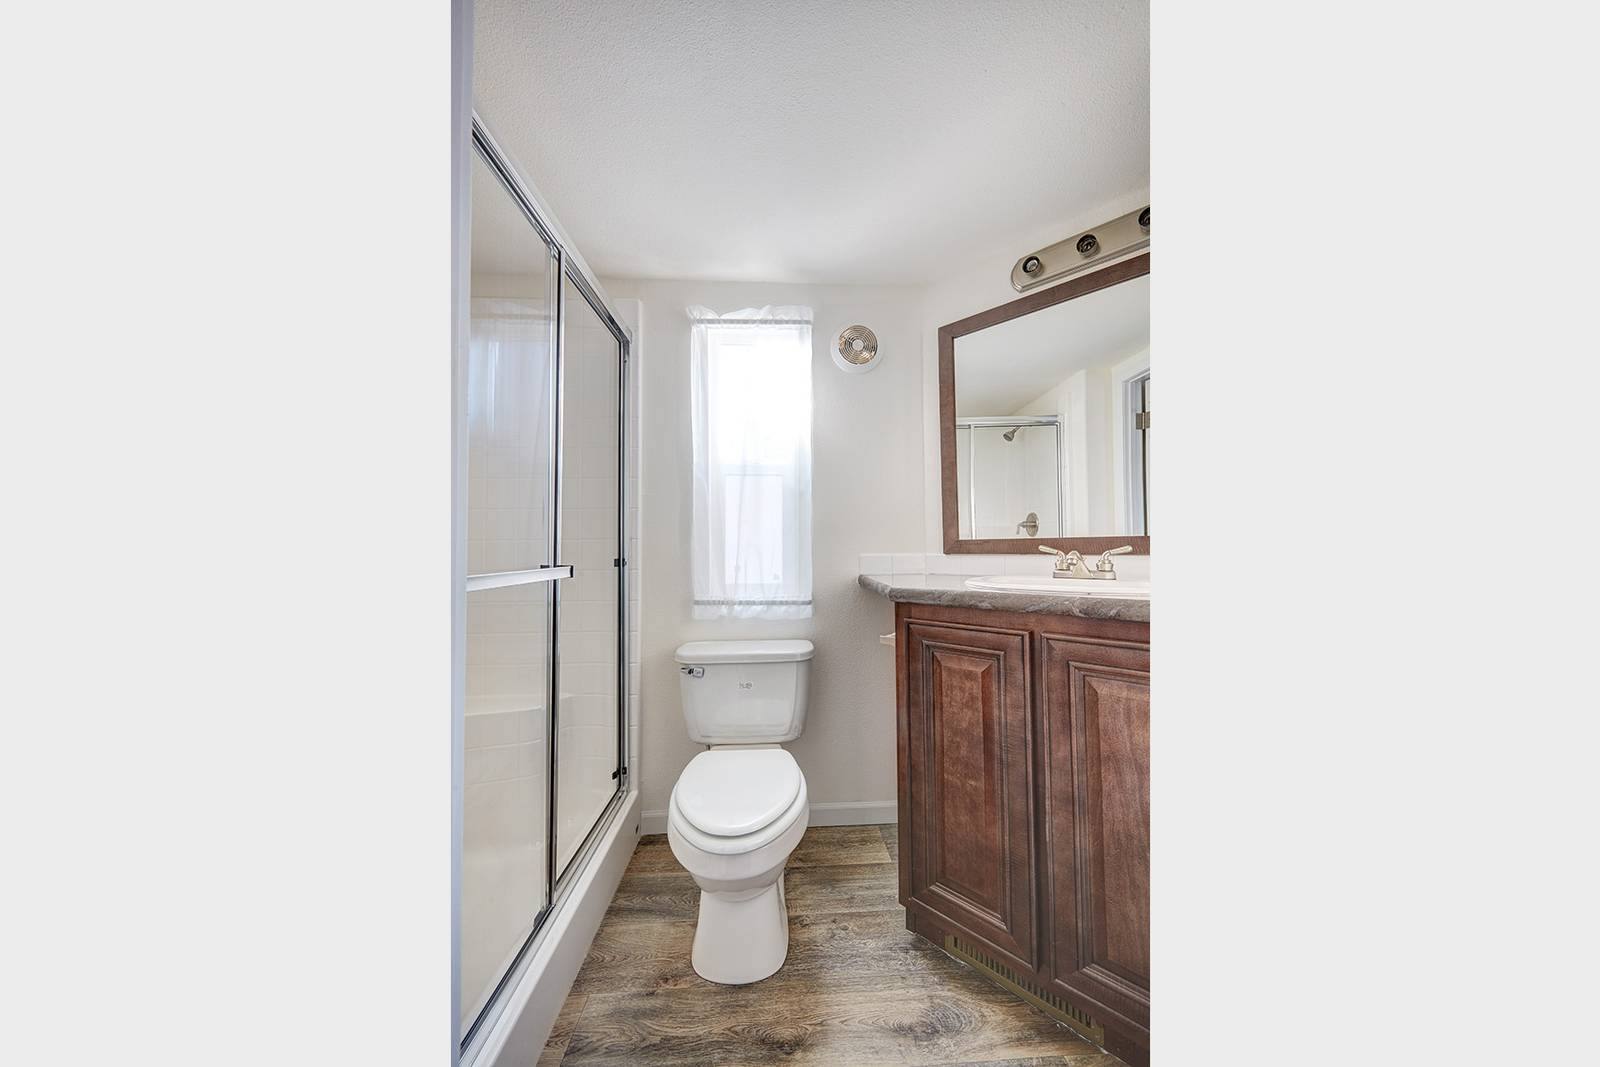 The Caymen APH-509A Bathroom